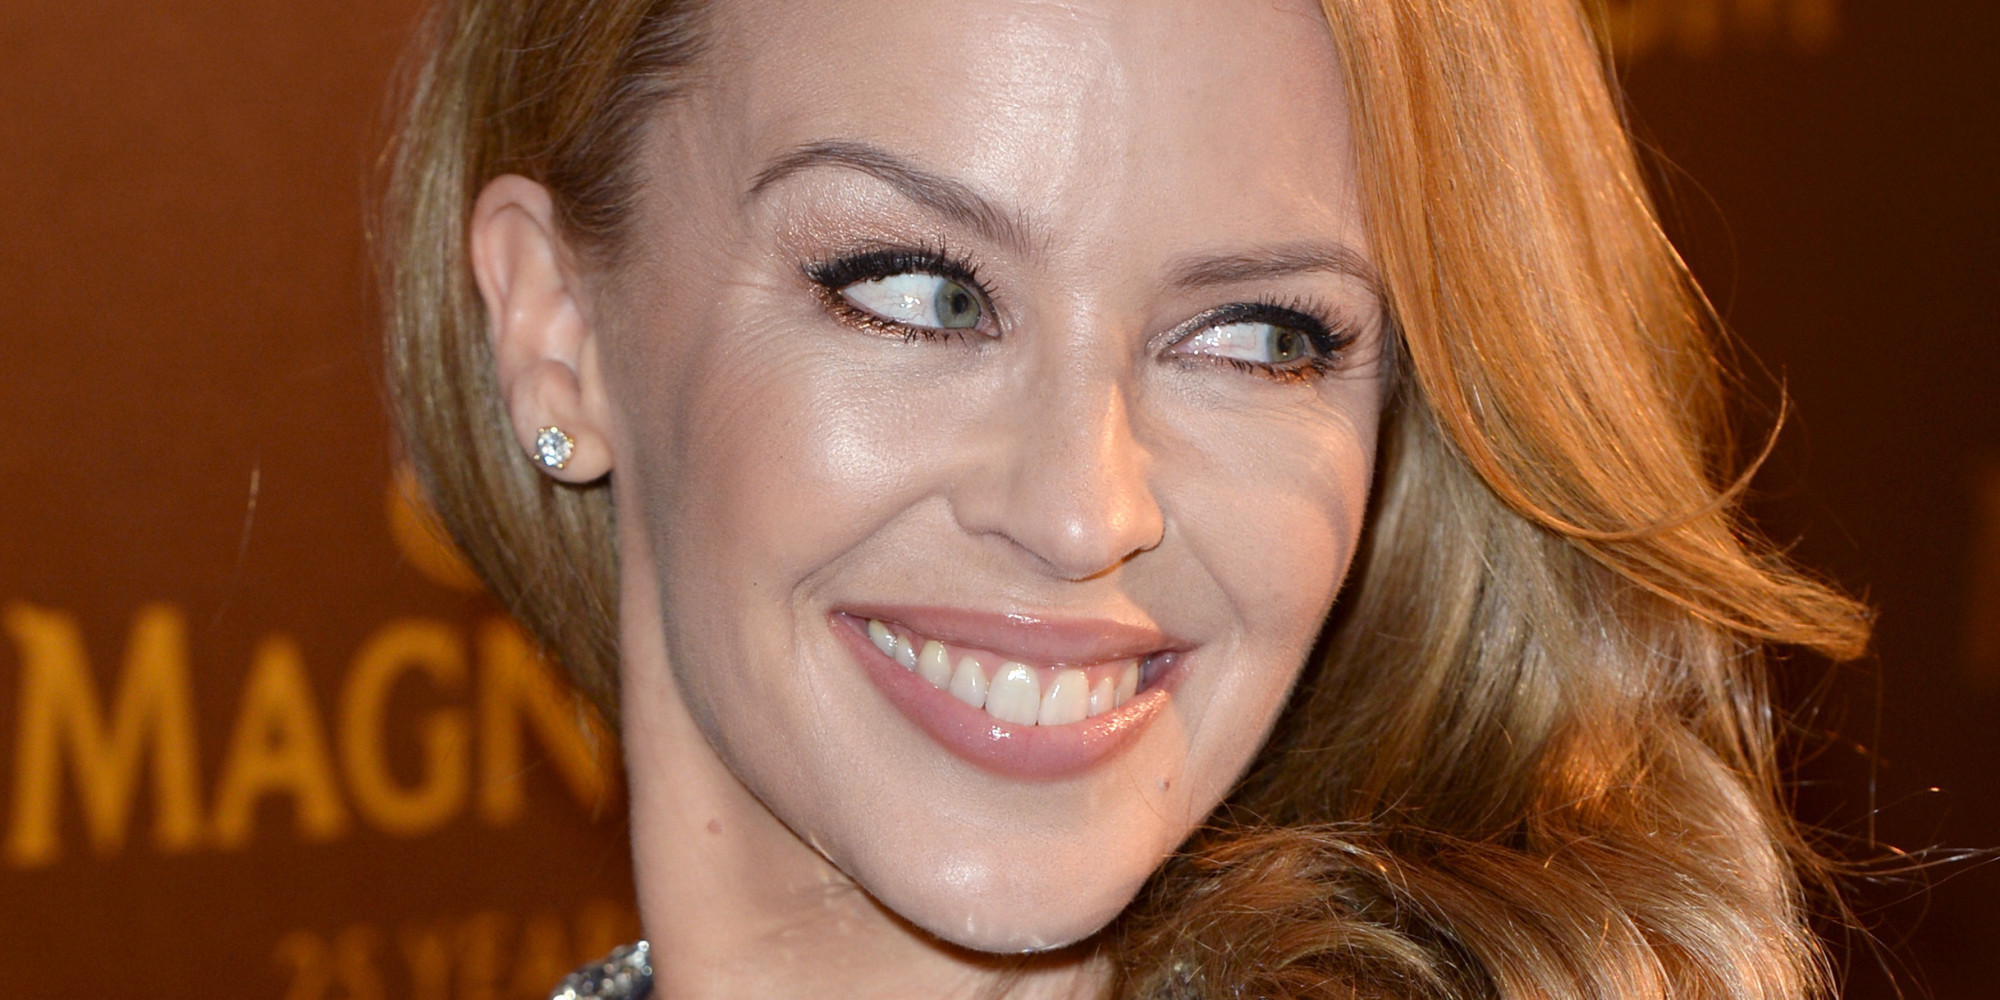 kylie minogue dating again